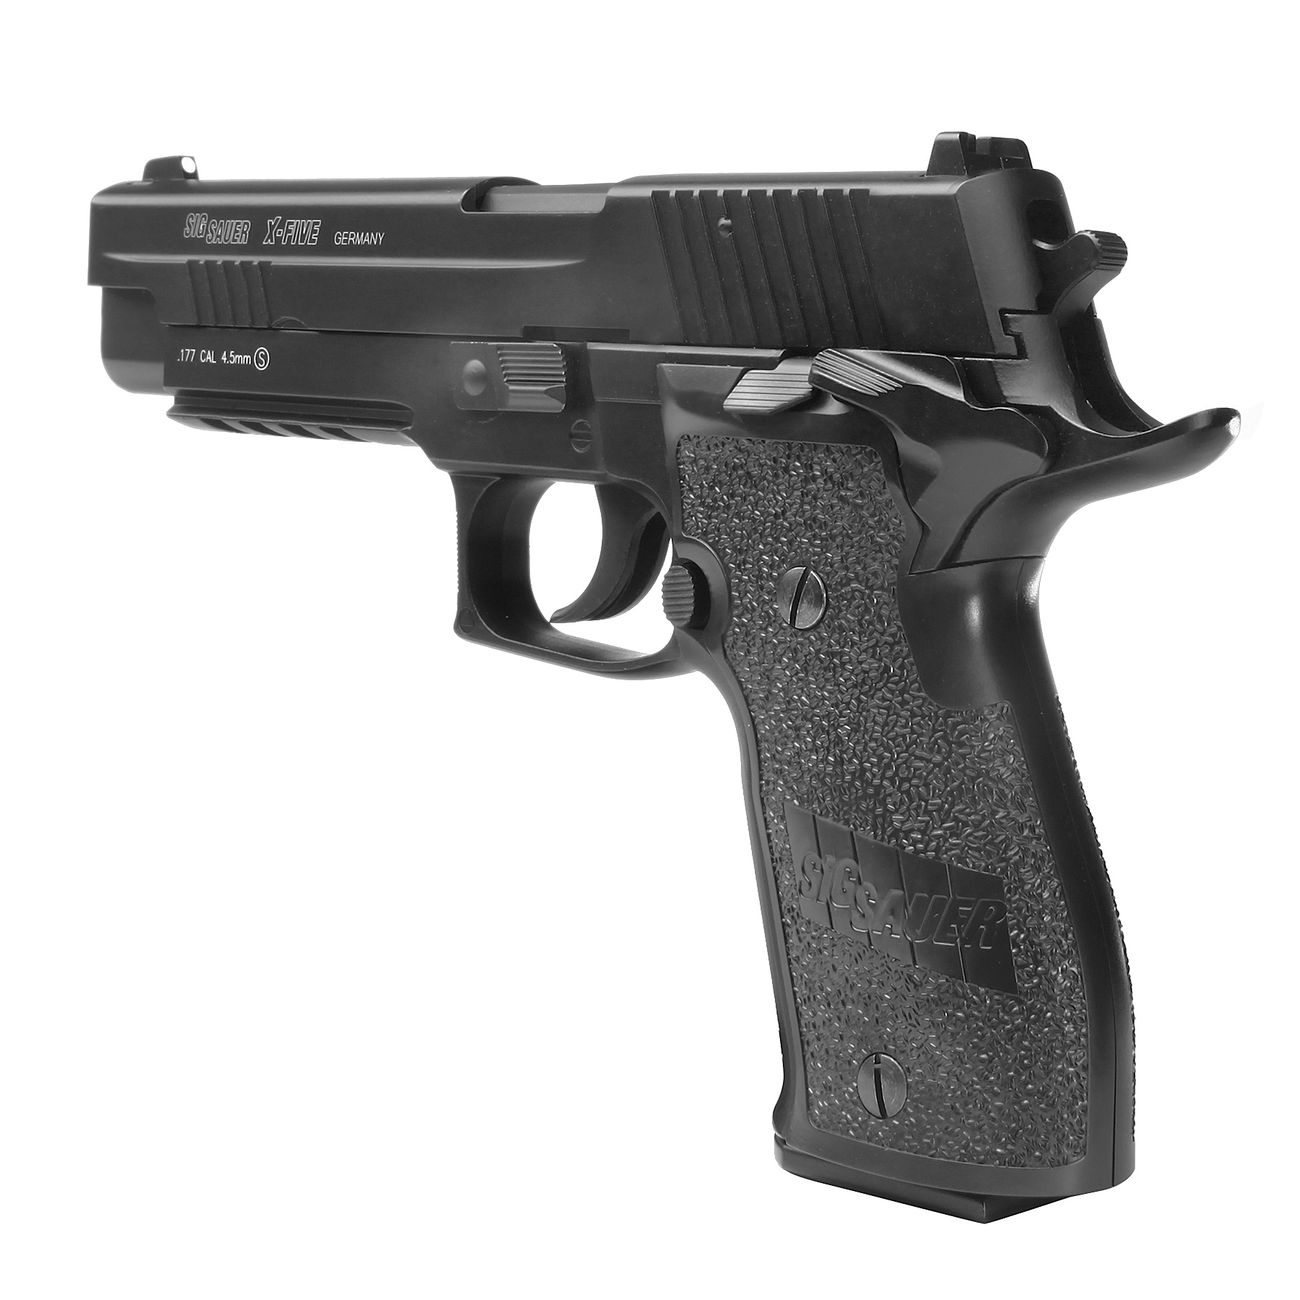 Cybergun Sig Sauer P226 X-Five Vollmetall CO2 Luftpistole 4,5mm BB 2